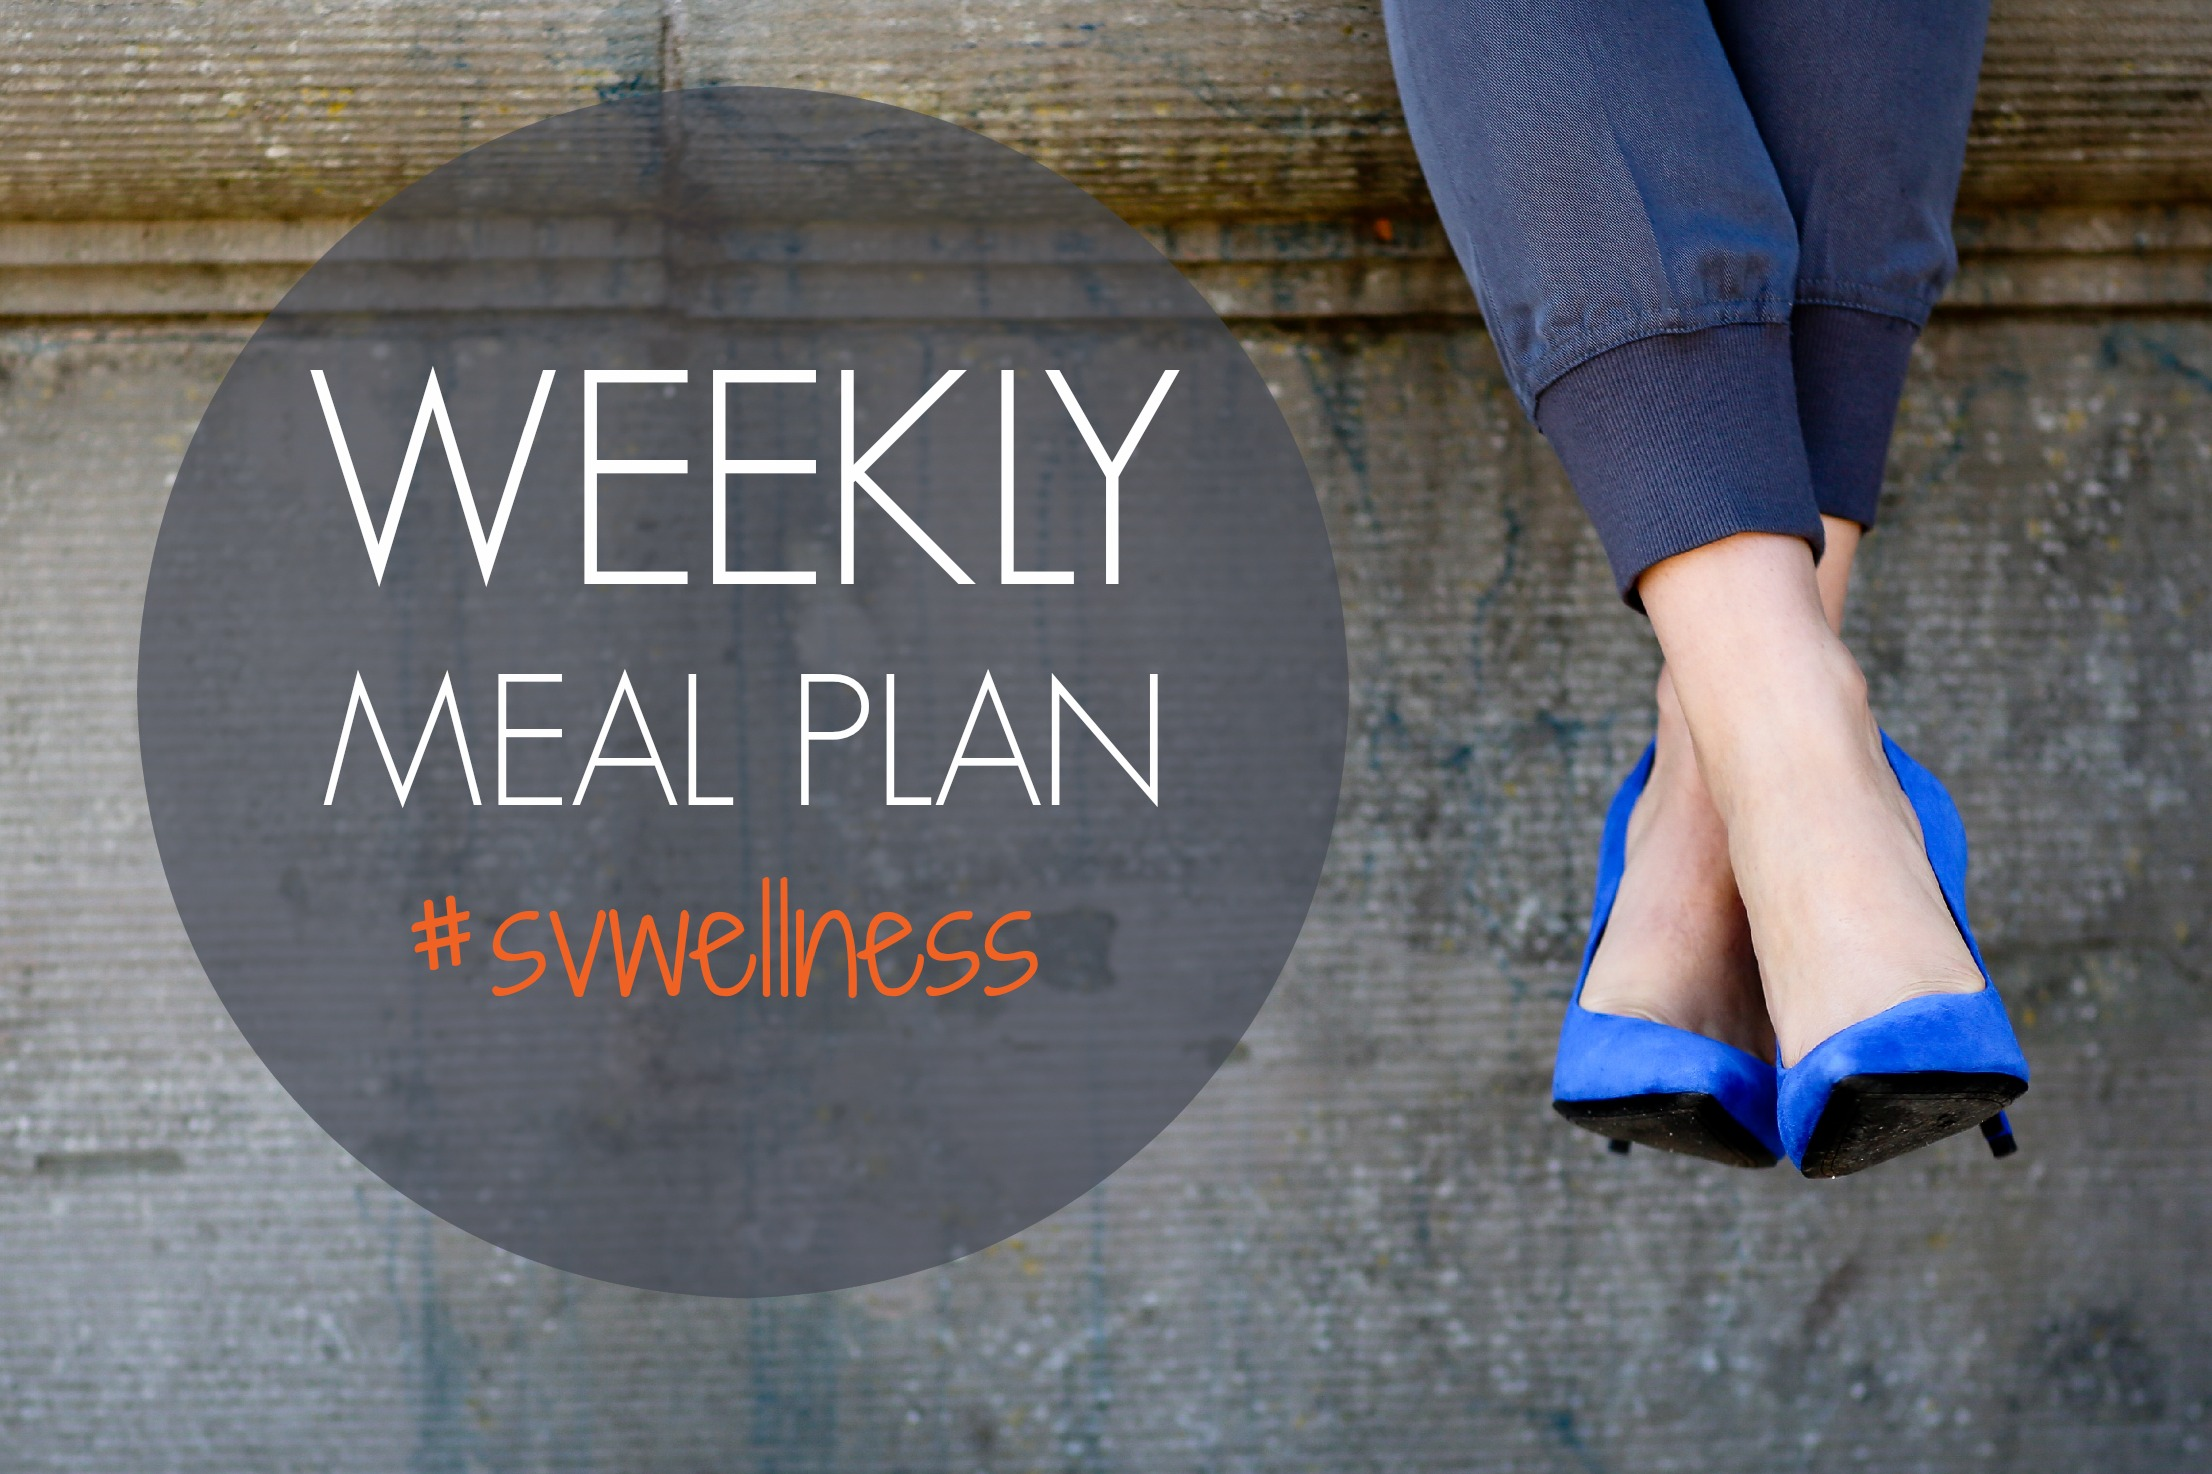 free weekly meal plan #svwellness